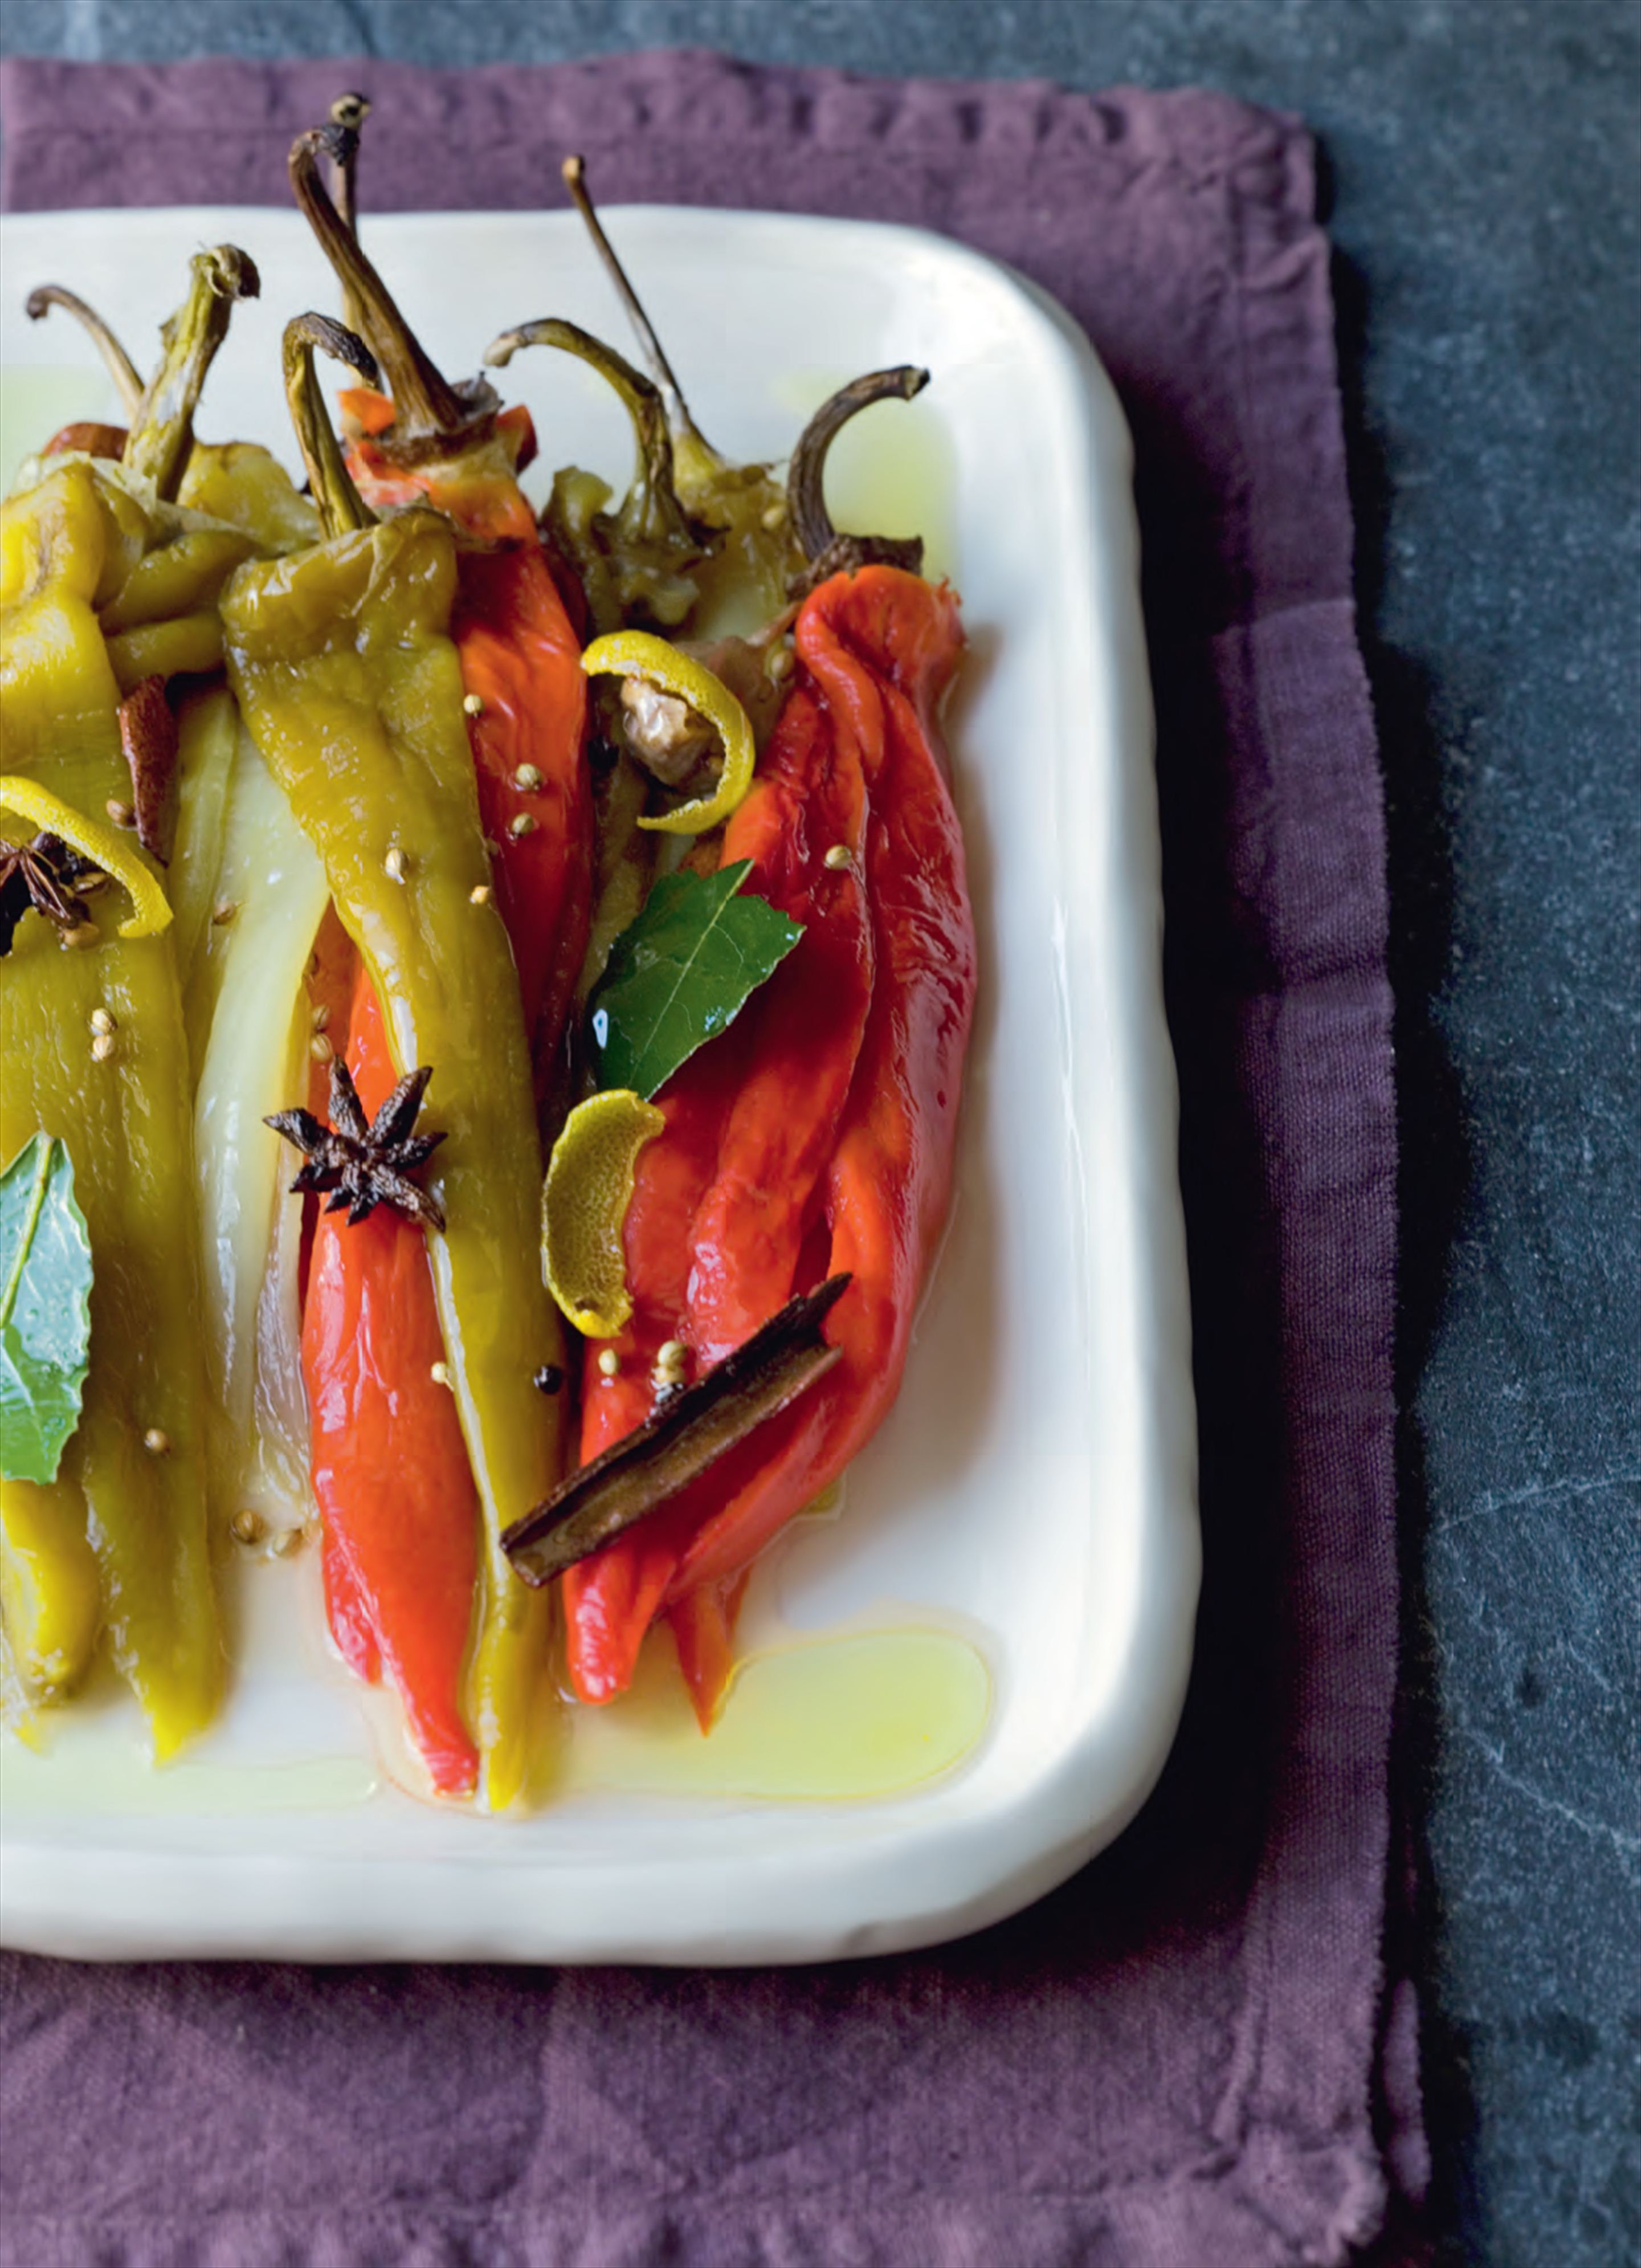 Hungarian peppers cooked in lemon oil